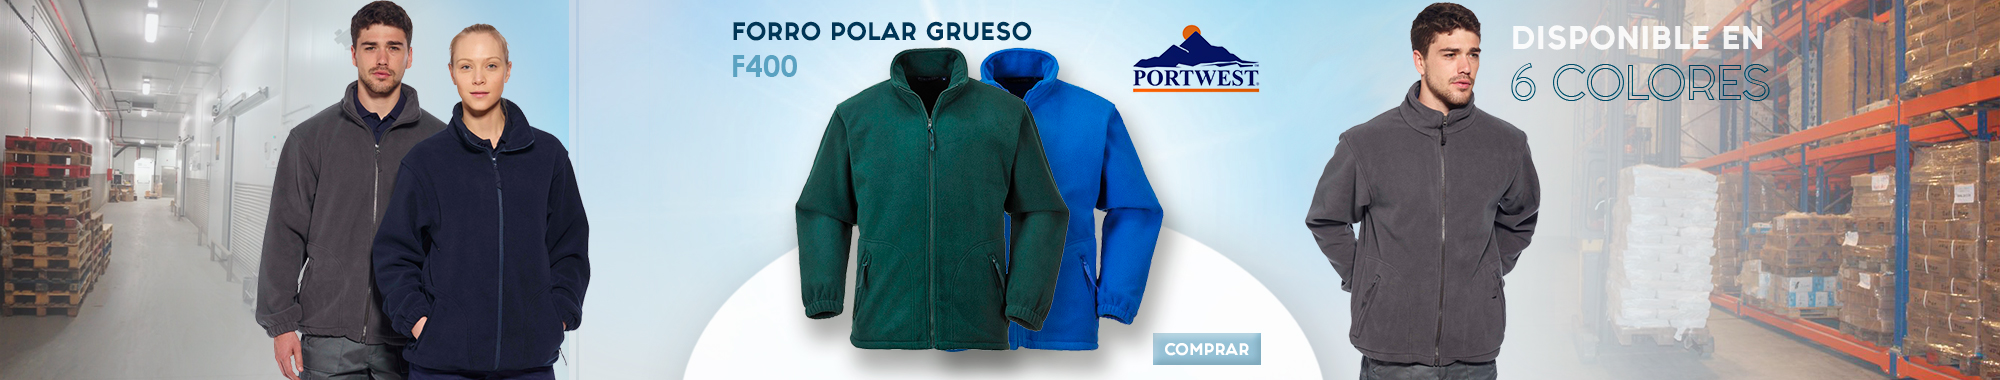 Forro polar Portwest F400